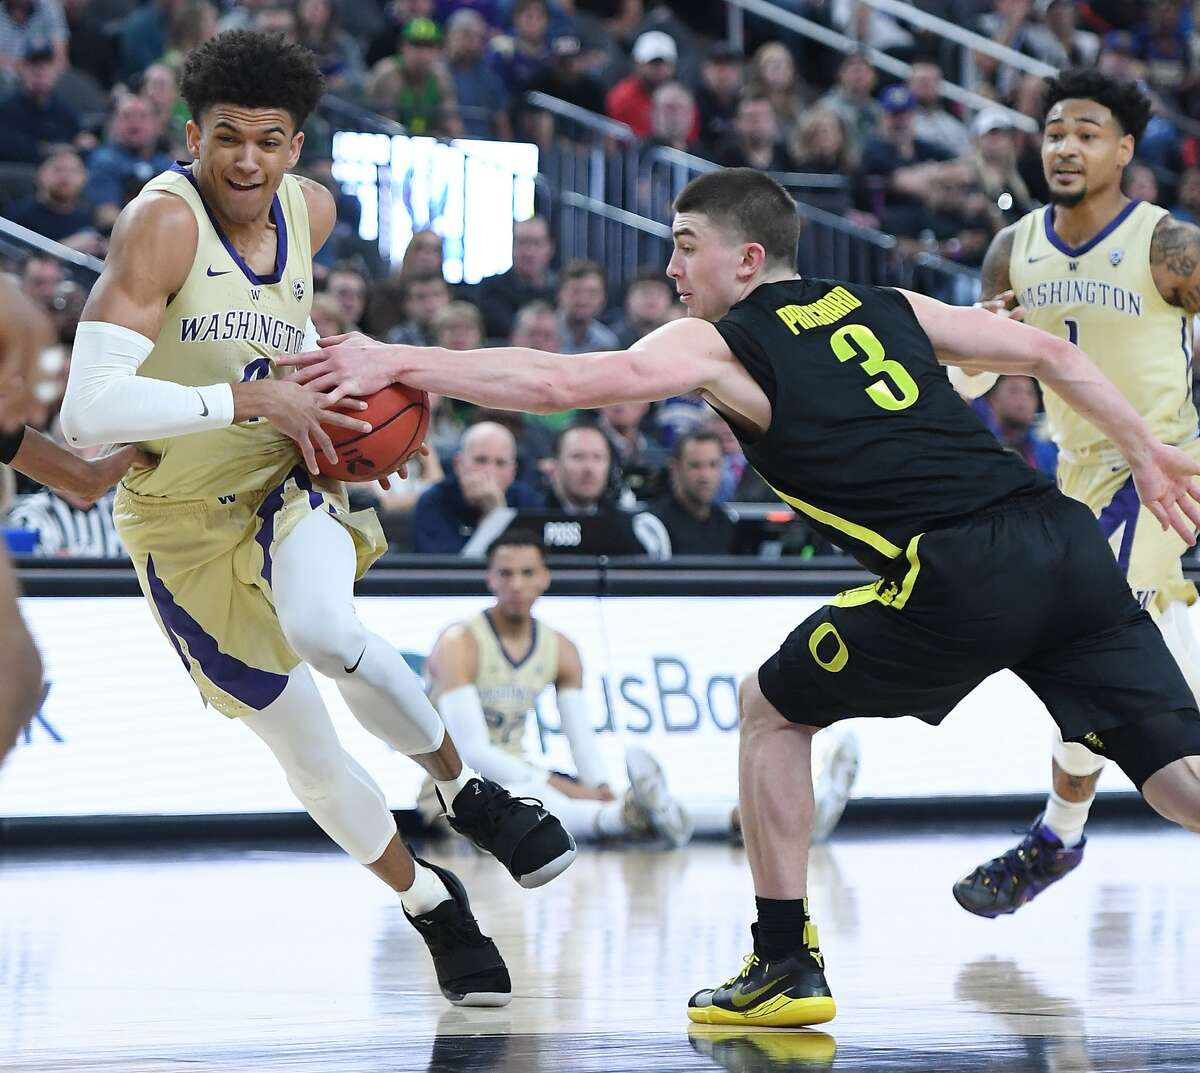 LAS VEGAS, NEVADA - MARCH 16: Payton Pritchard #3 of the Oregon Ducks tries to steal the ball from Matisse Thybulle #4 of the Washington Huskiesduring the championship game of the Pac-12 basketball tournament at T-Mobile Arena on March 16, 2019 in Las Vegas, Nevada. (Photo by Ethan Miller/Getty Images)